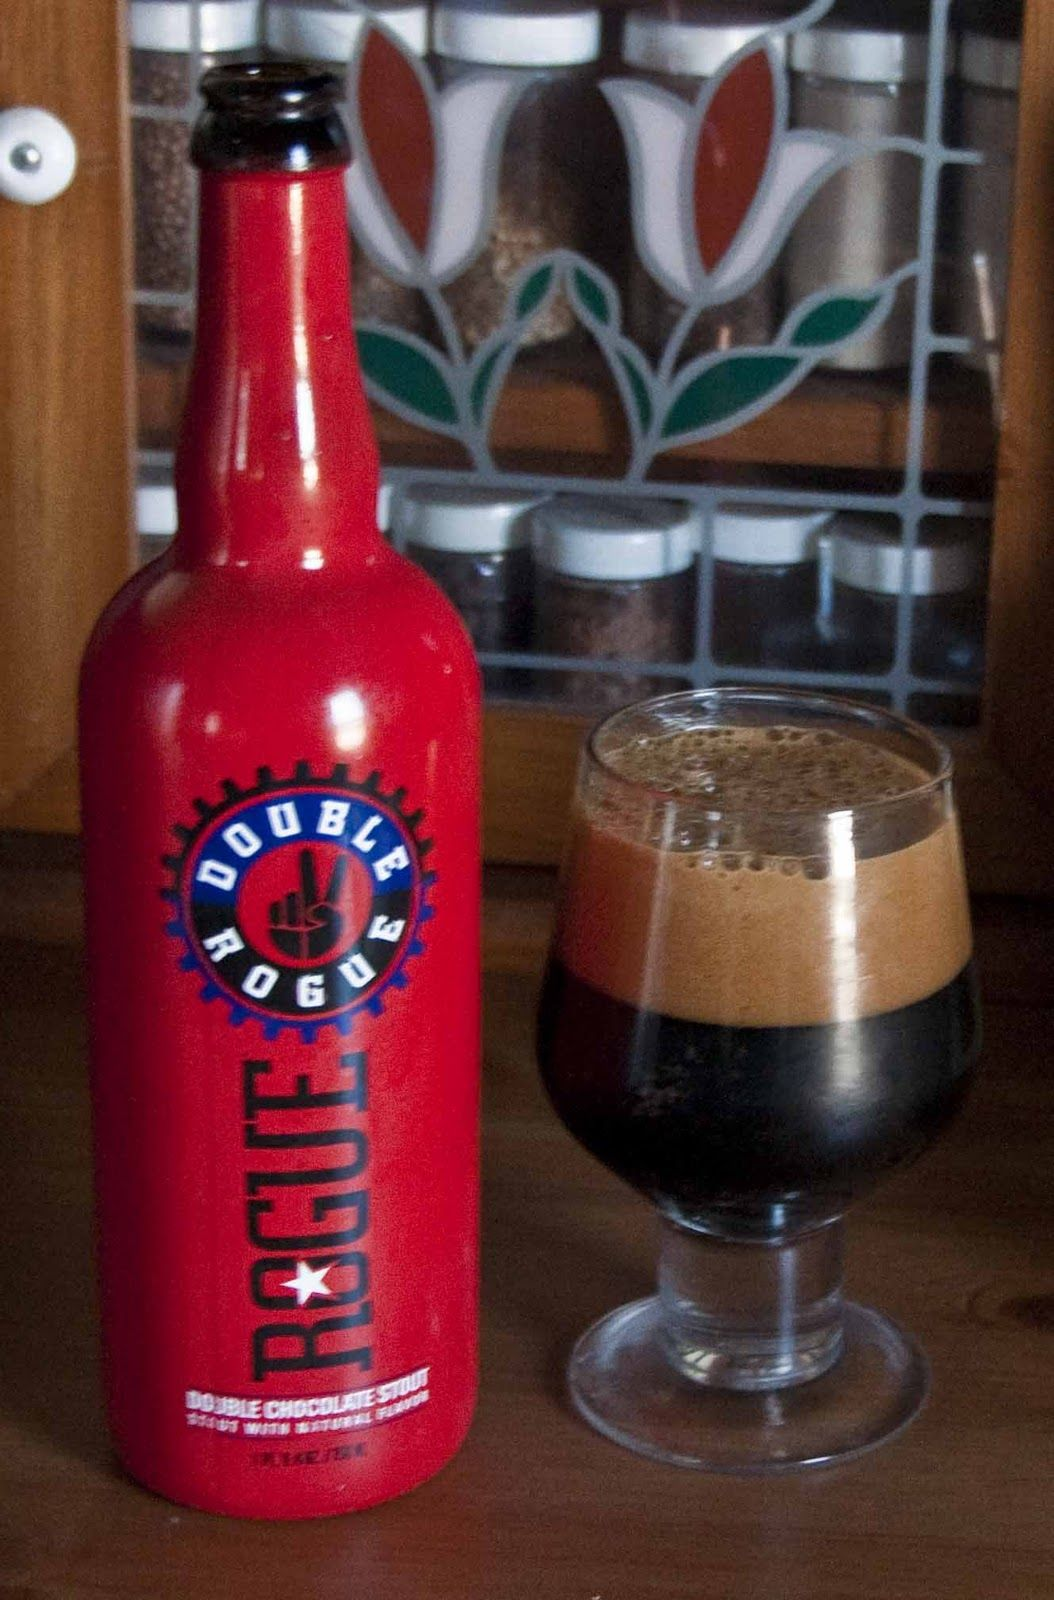 2/10/15 Dancing with Wolves #RogueDoubleChocolateStout ...